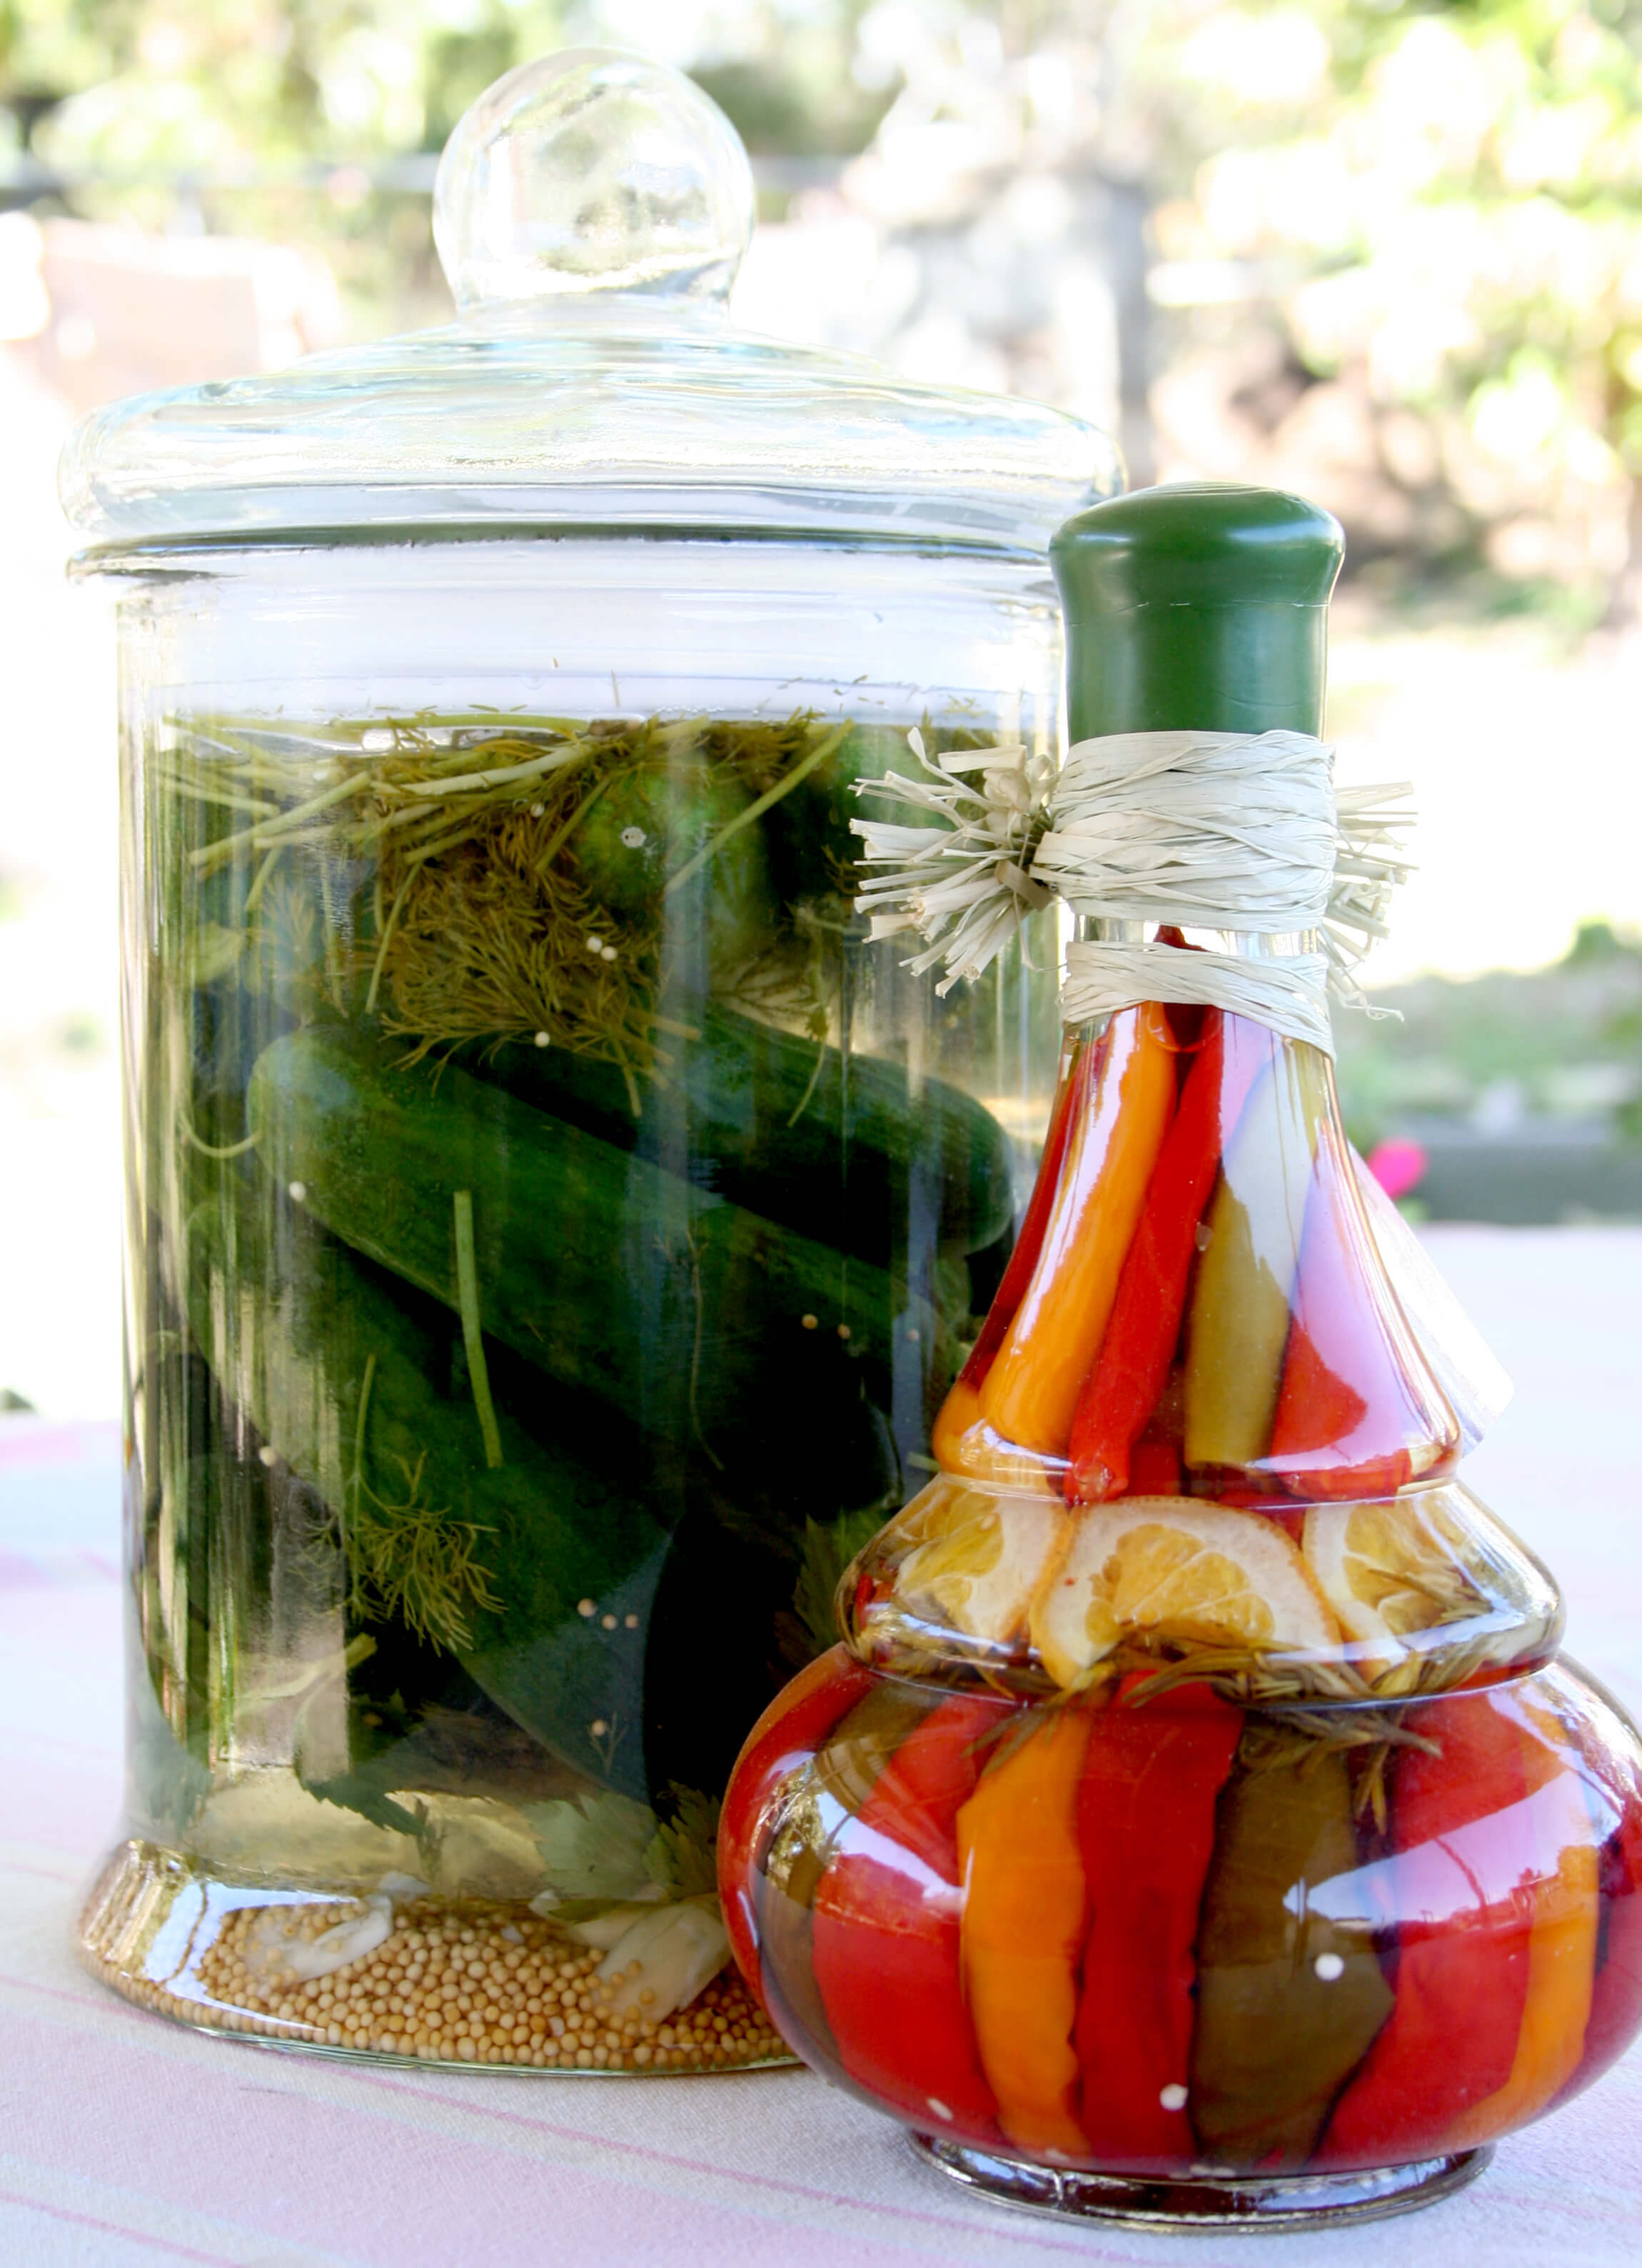 Pickling: The Good, the Bad, and the Ugly